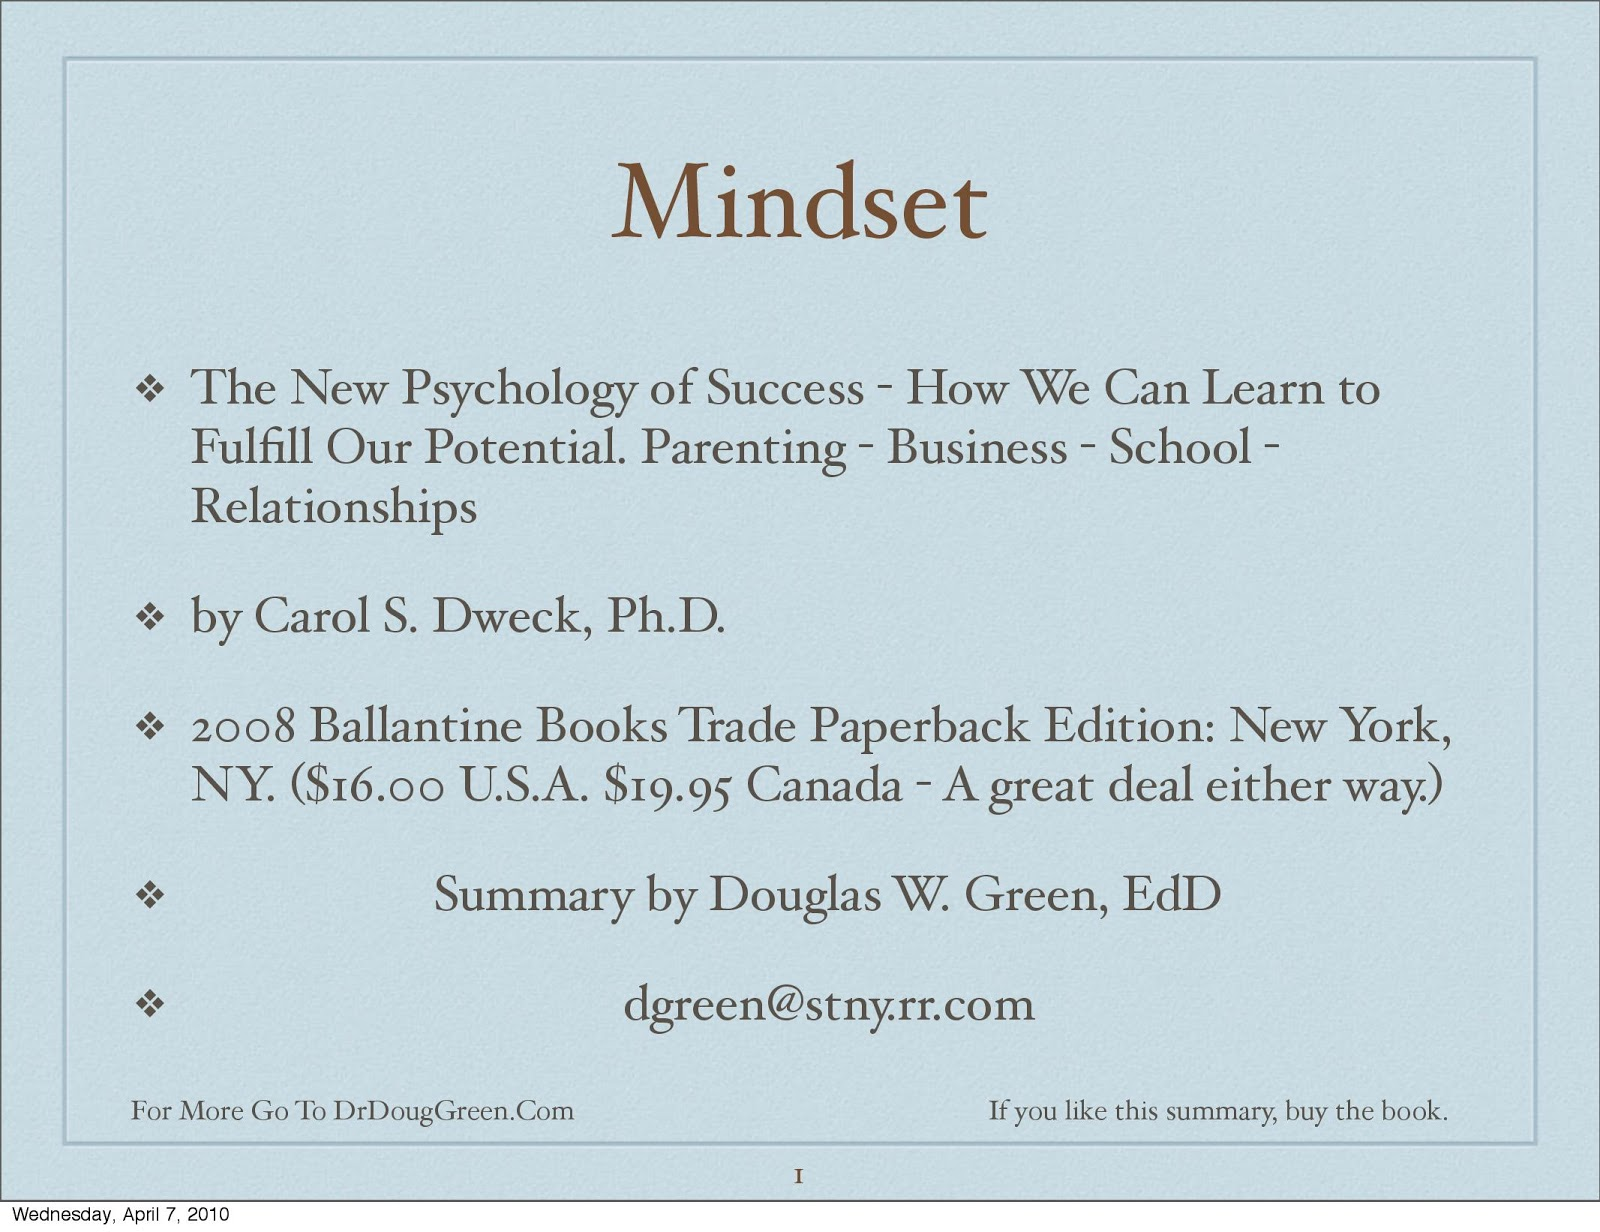 Free Download Or Read Online Mindset New Psychology Of Success Book By Carol Dweck